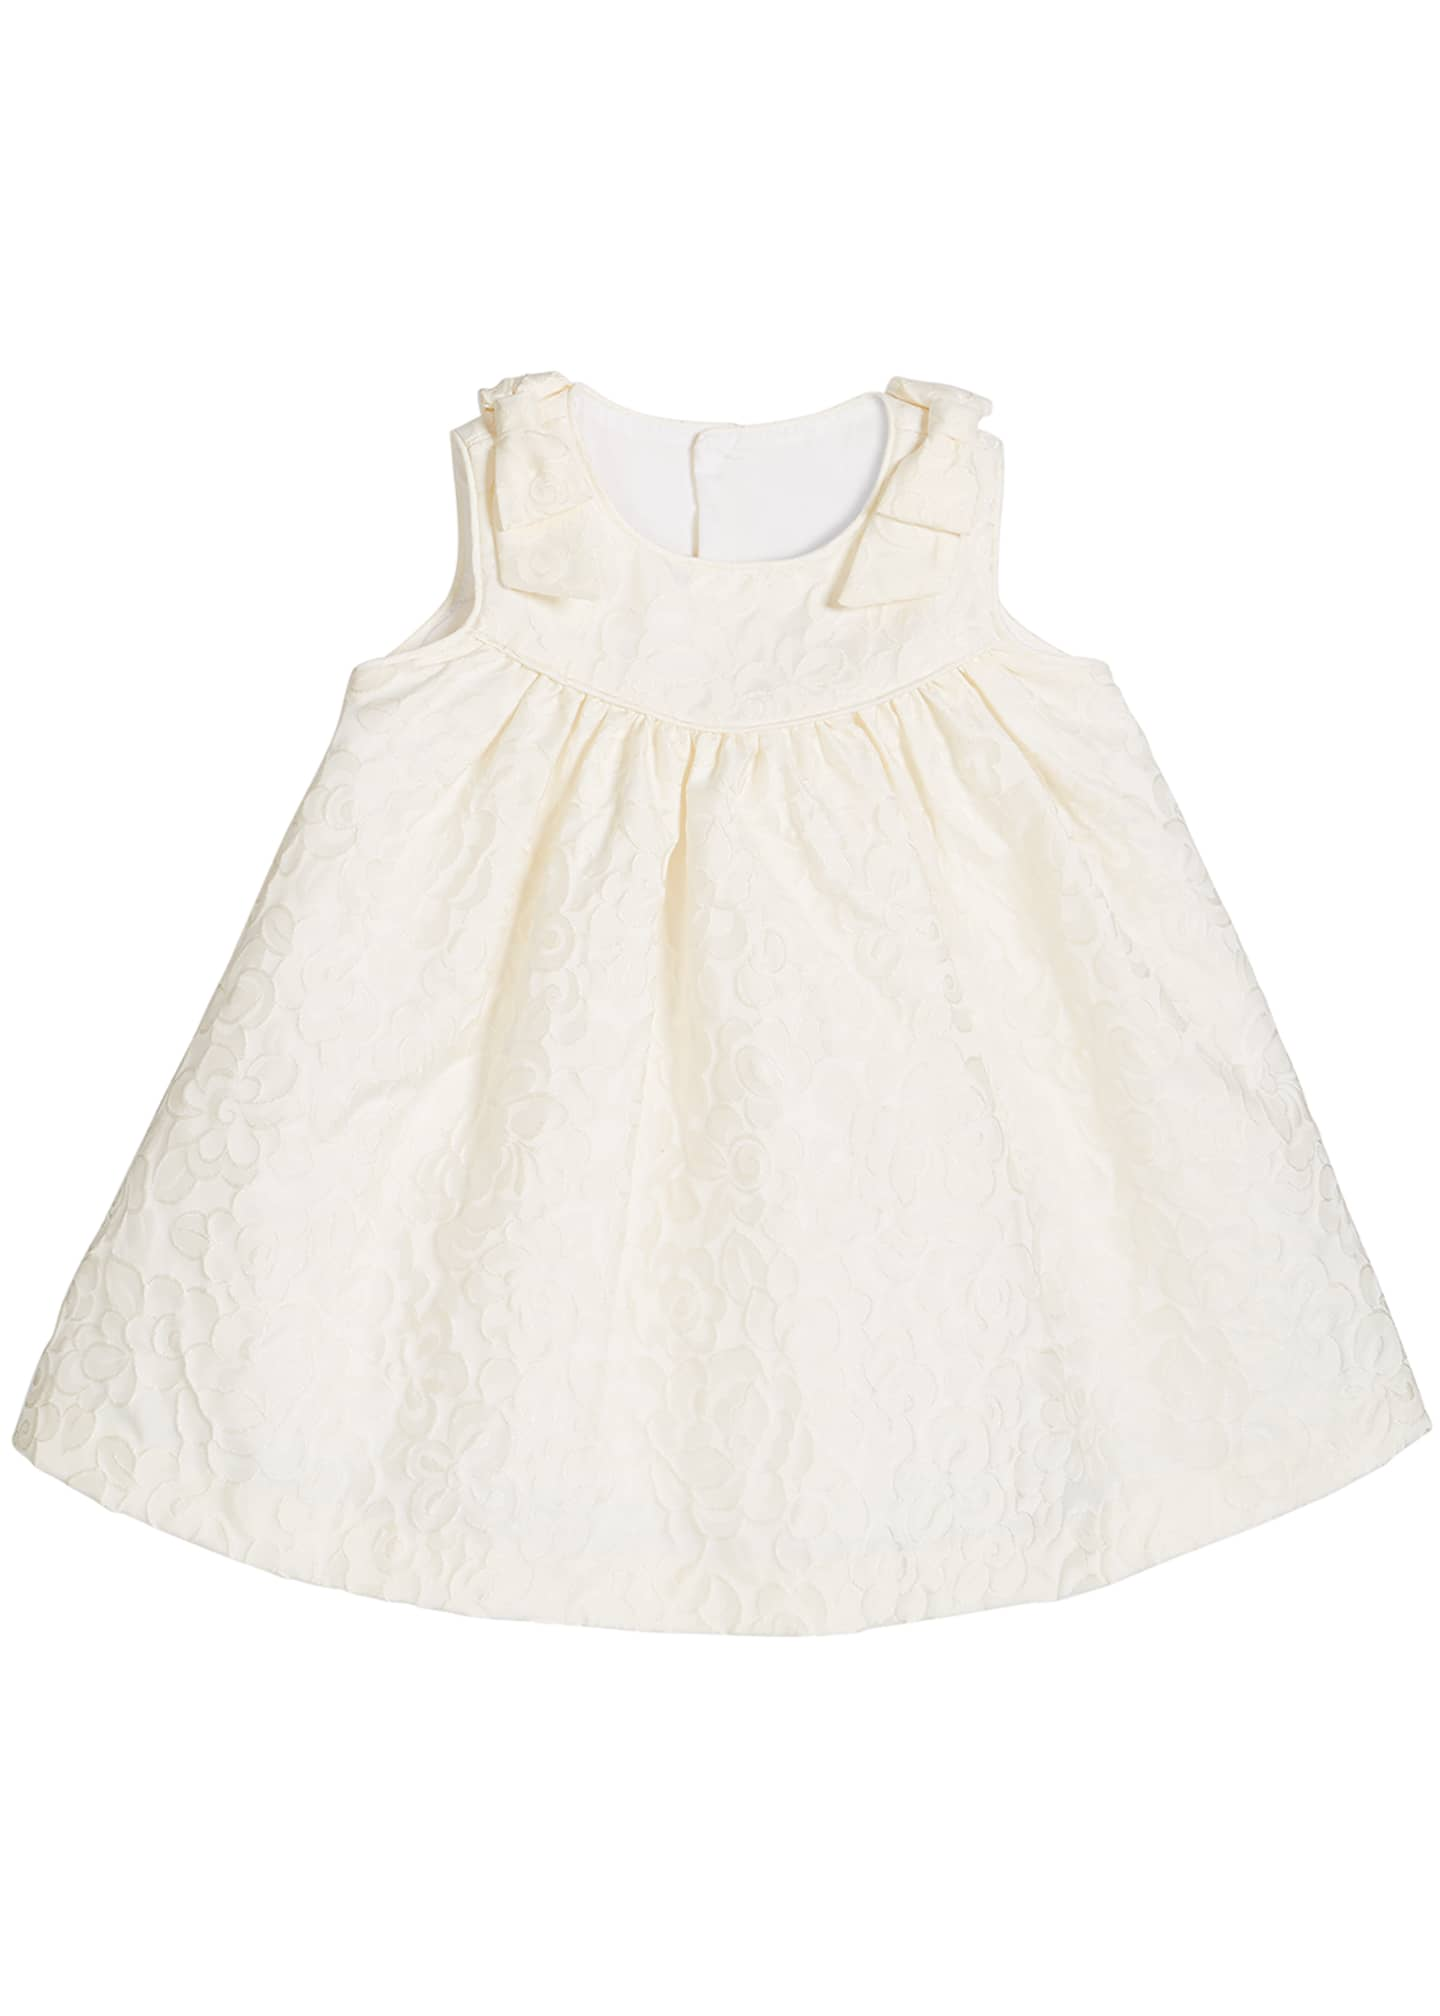 Image 1 of 2: Girl's Ivory Dress with Bow Shoulders, Size 3-18 Months